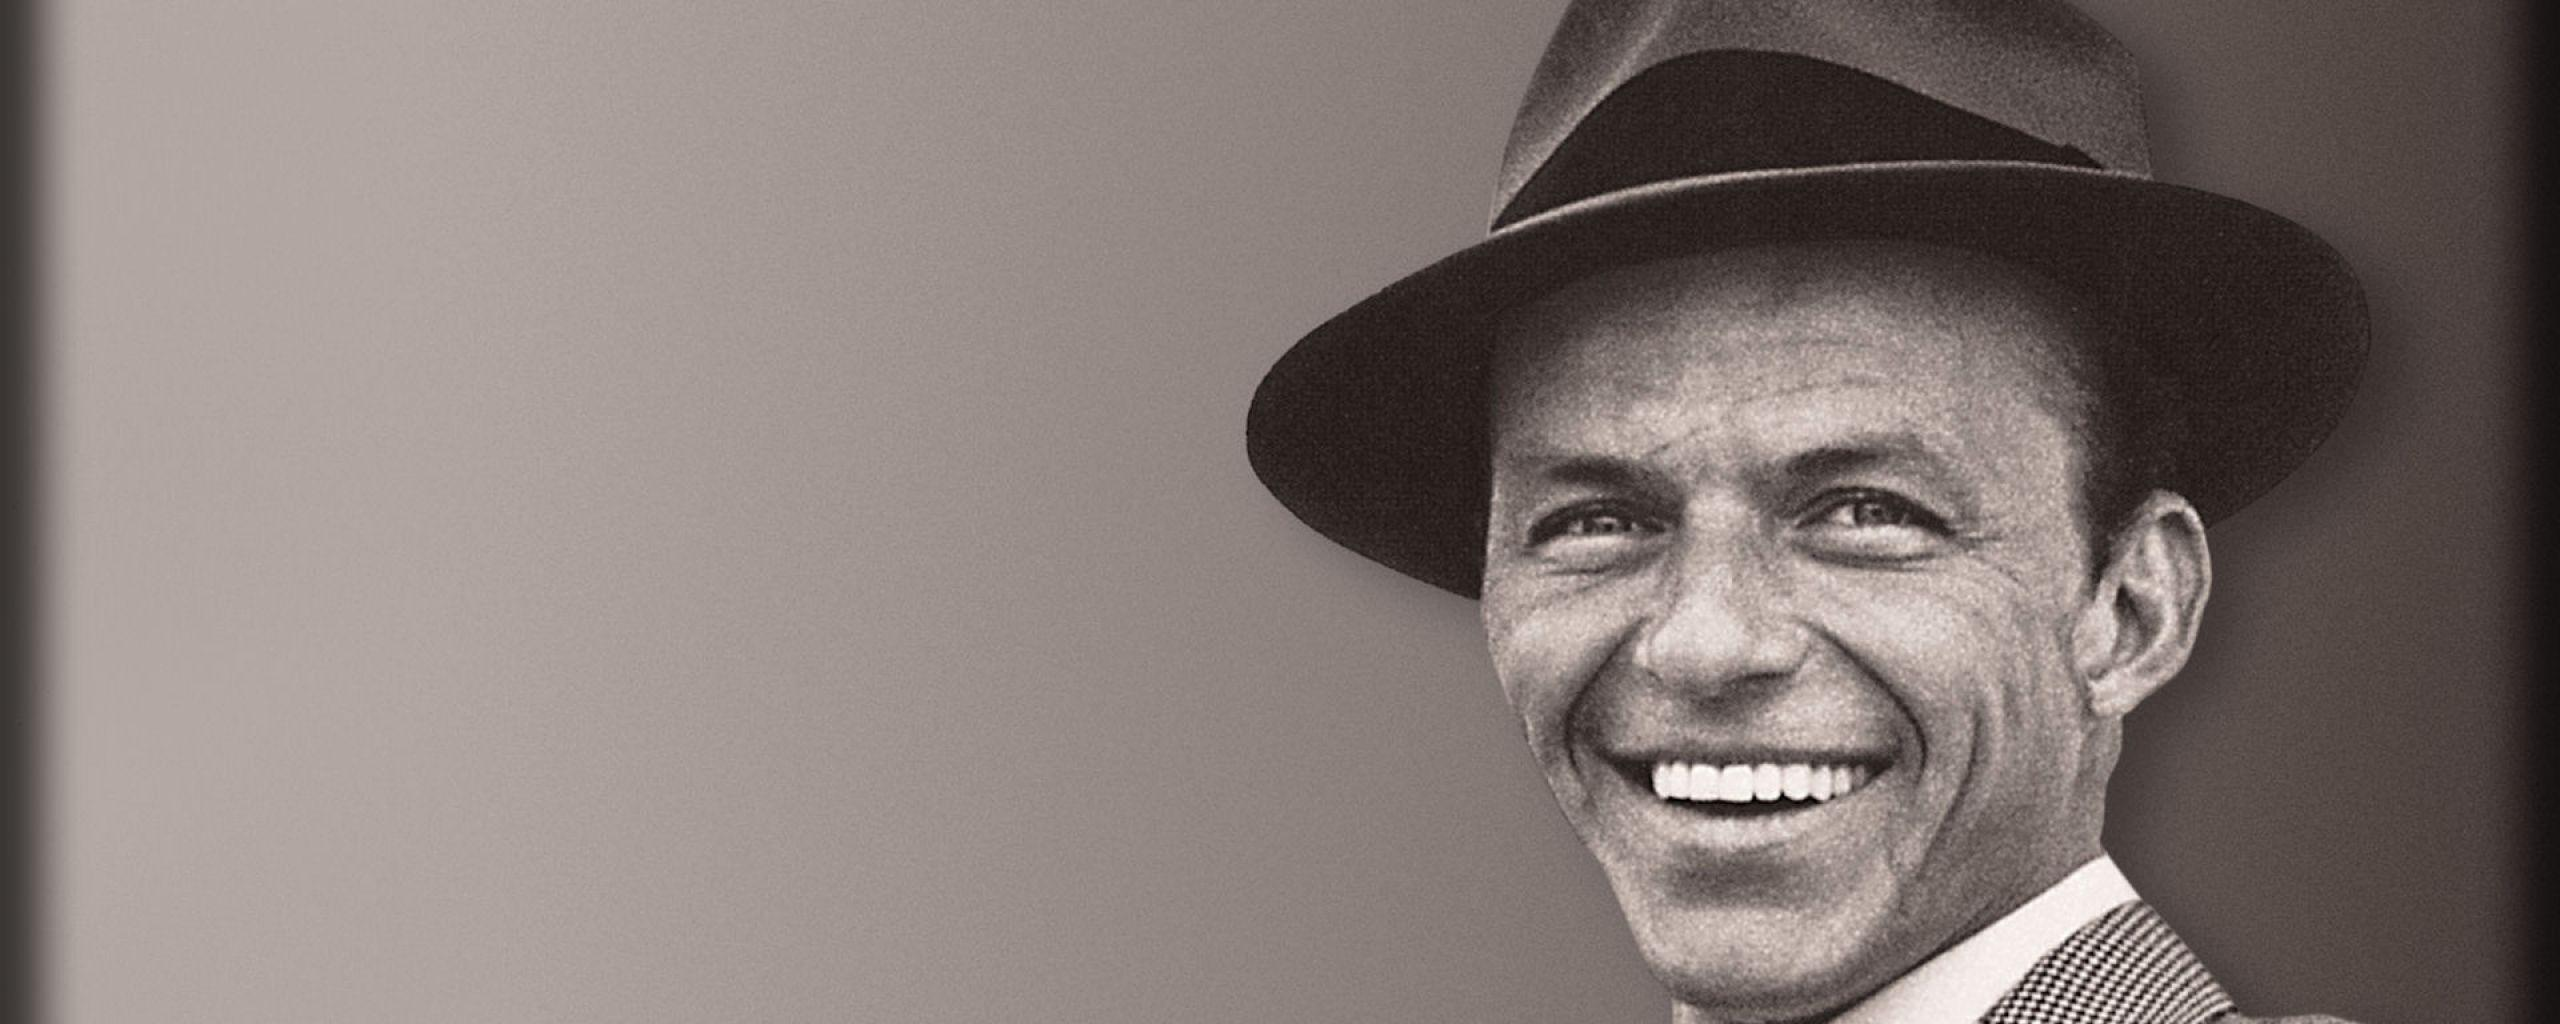 Download Wallpapers 2560x1024 Frank sinatra, Smile, Suit, Hat, Face